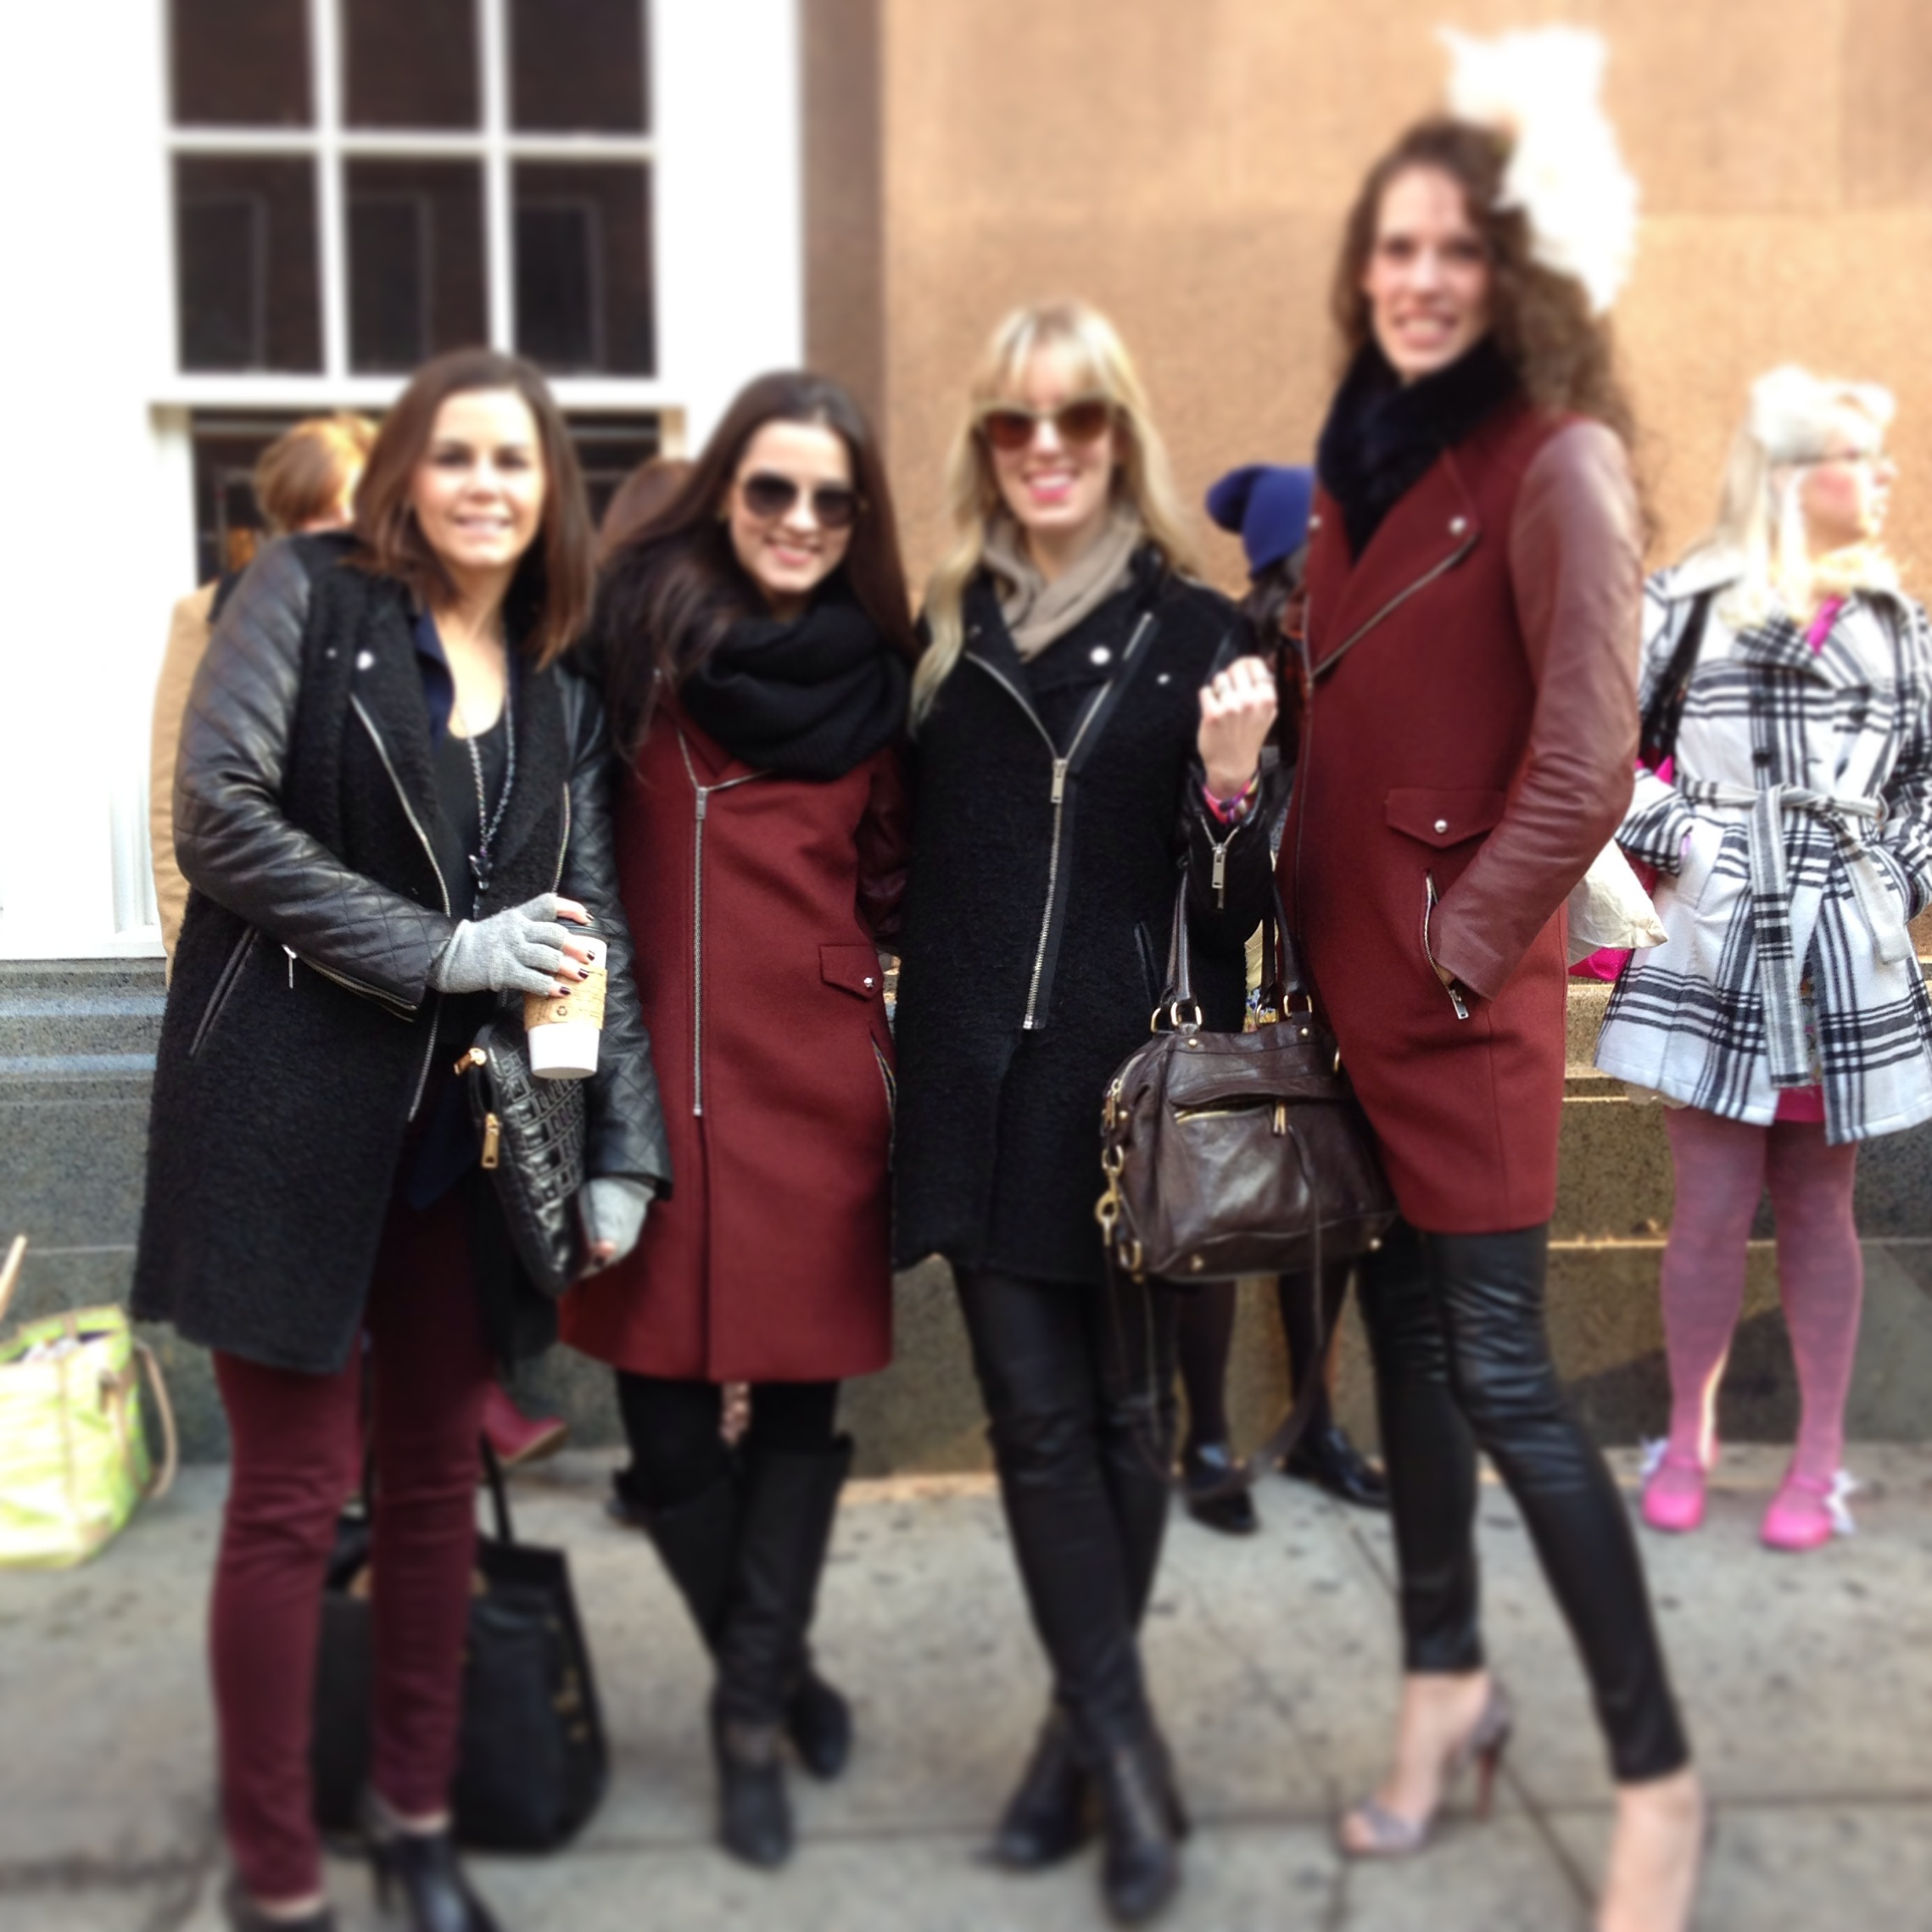 zara jackets on robyn m ward, justmamor, dear andi and e.kammeyer